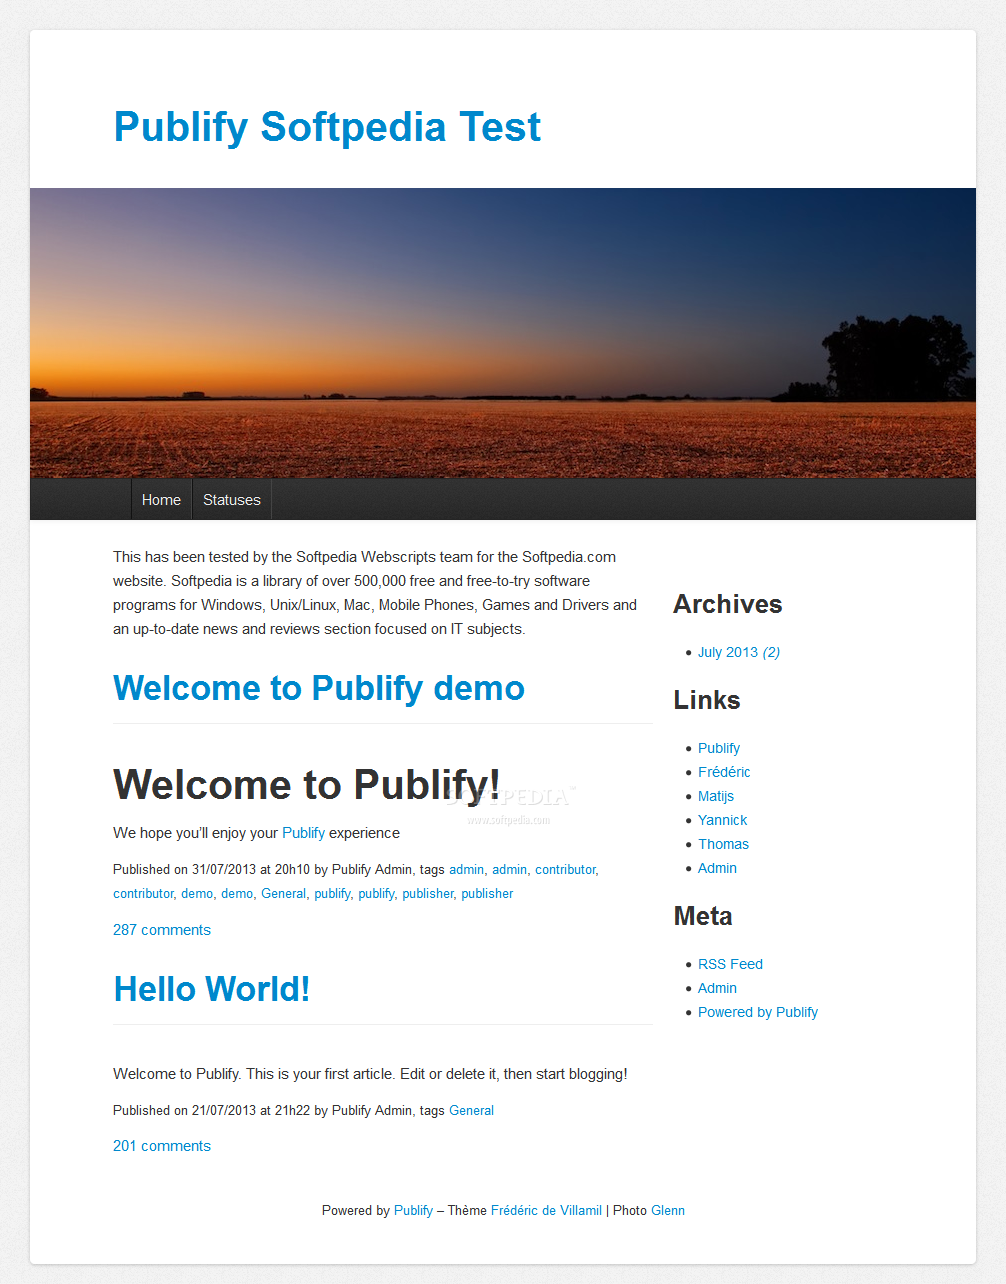 Publify - A default Publify theme is also included